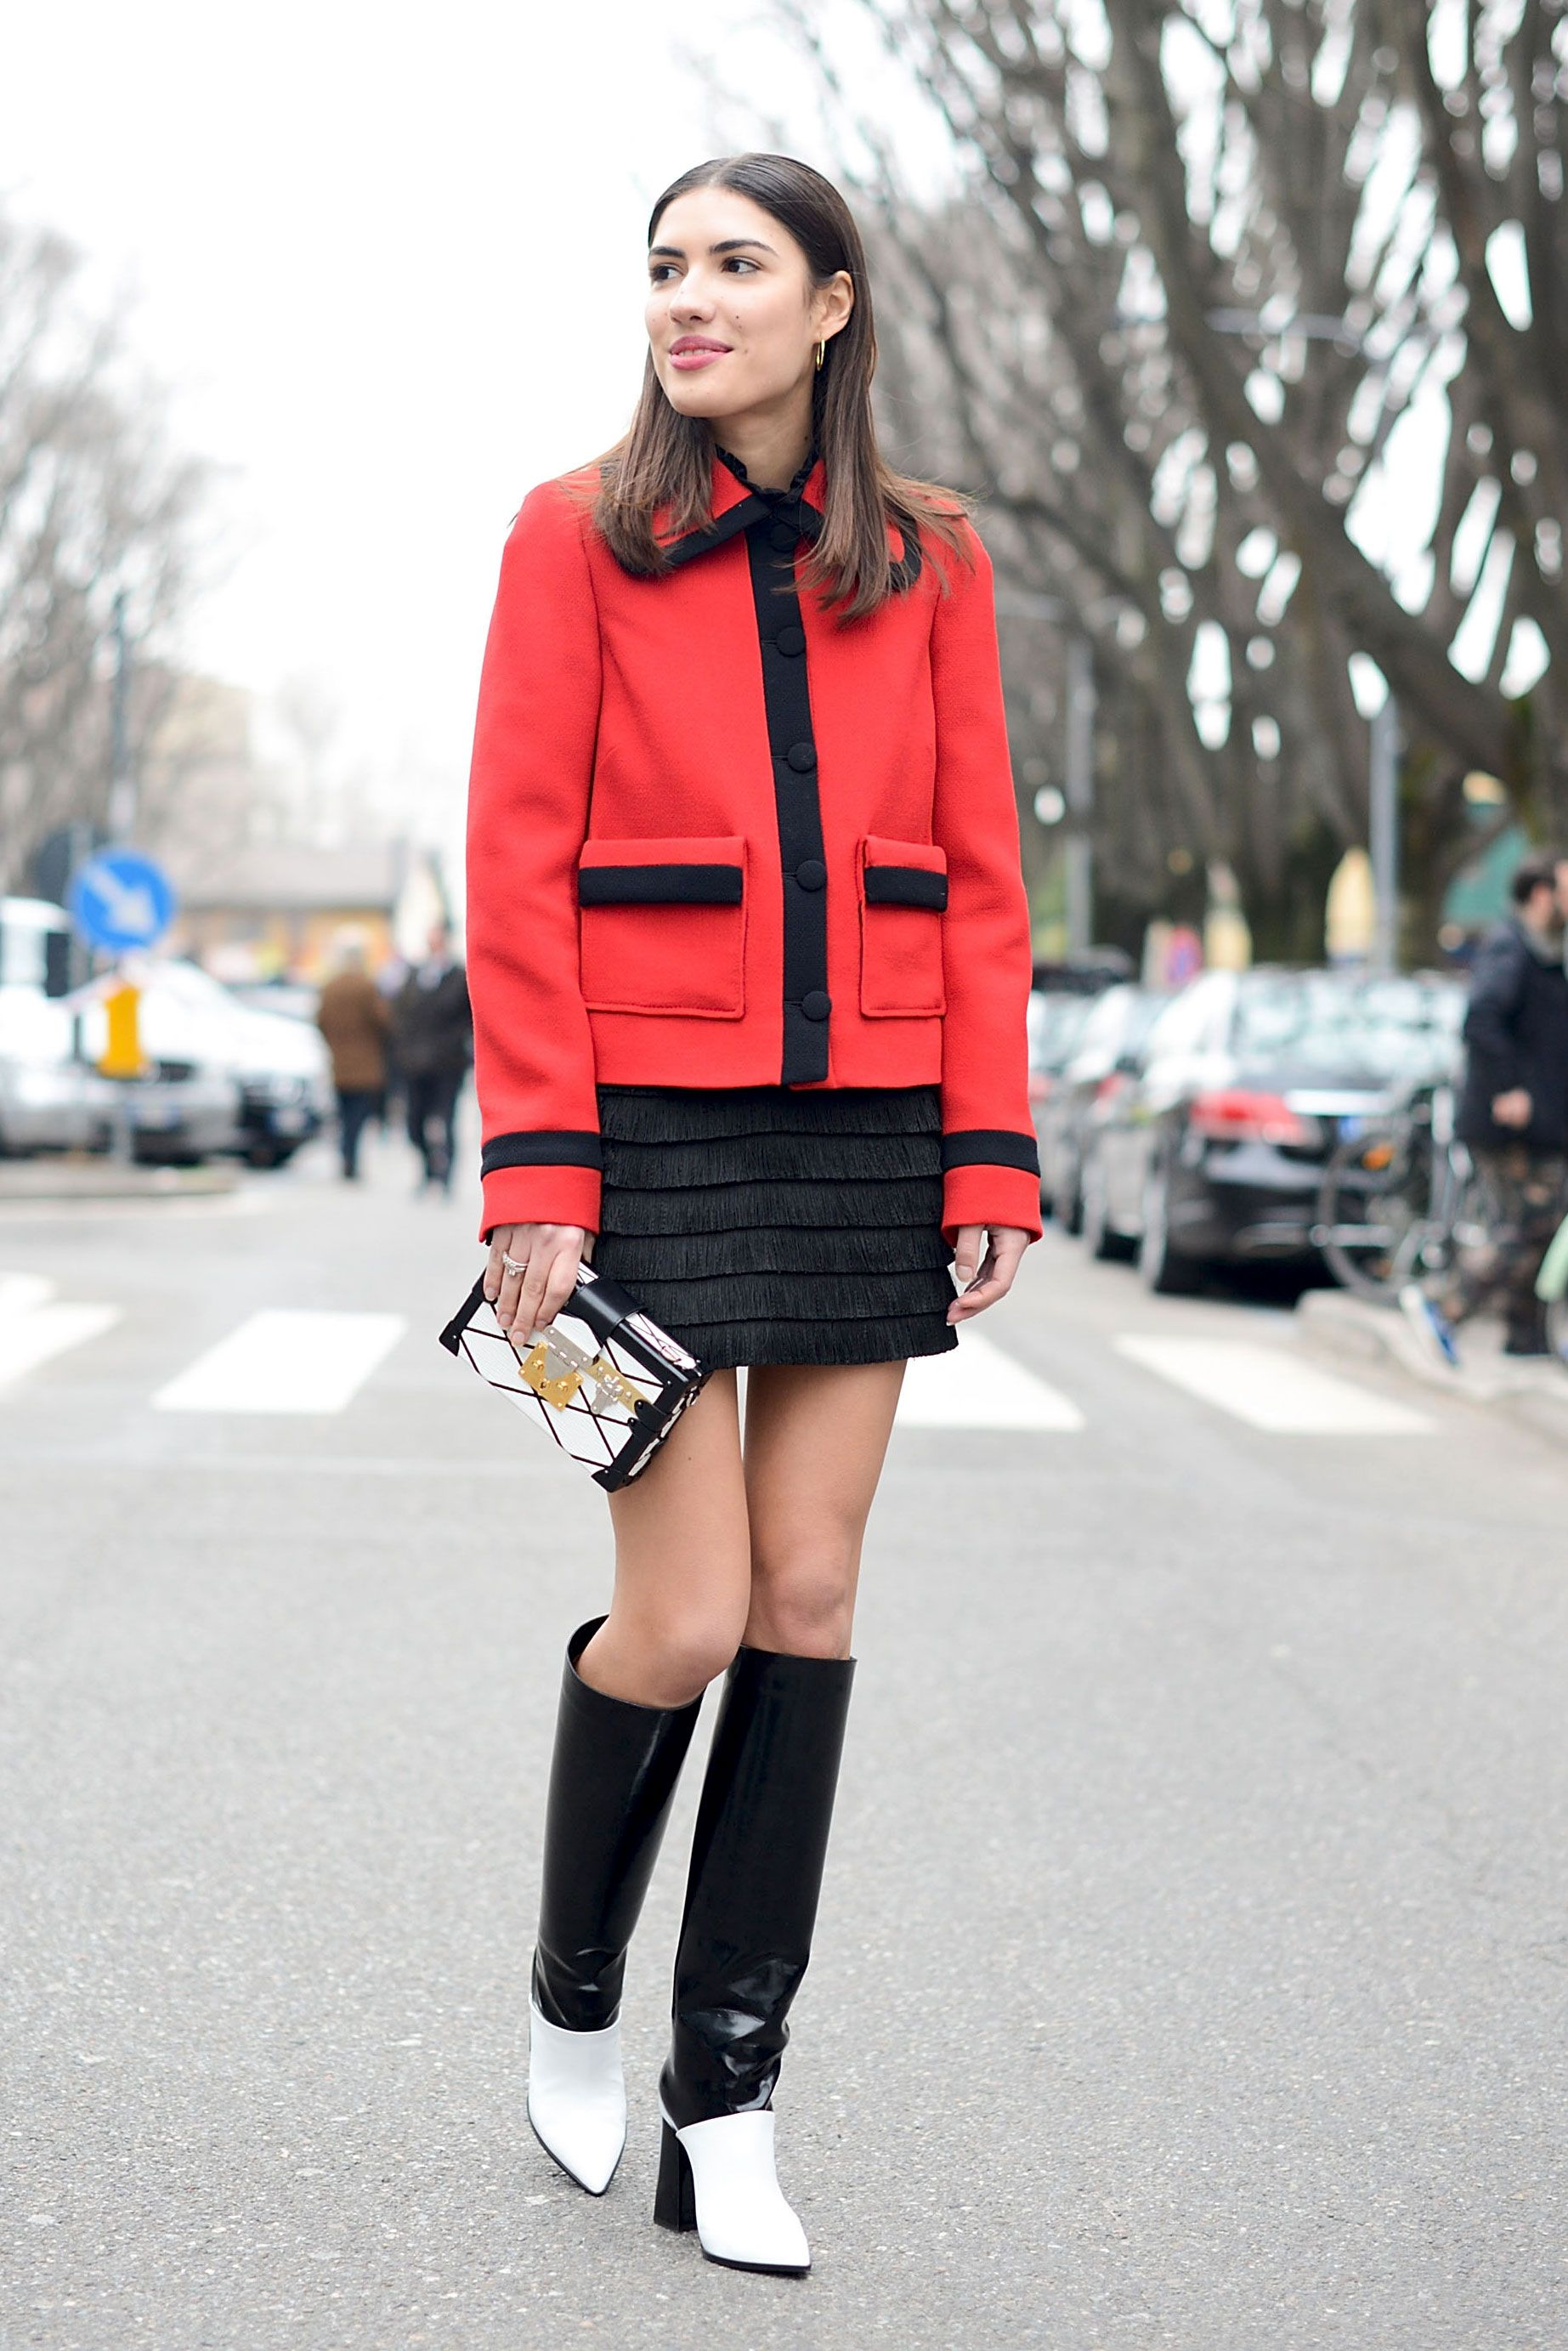 All the Gorgeous Street Styles From Milan Fashion Week  - Cosmopolitan.com